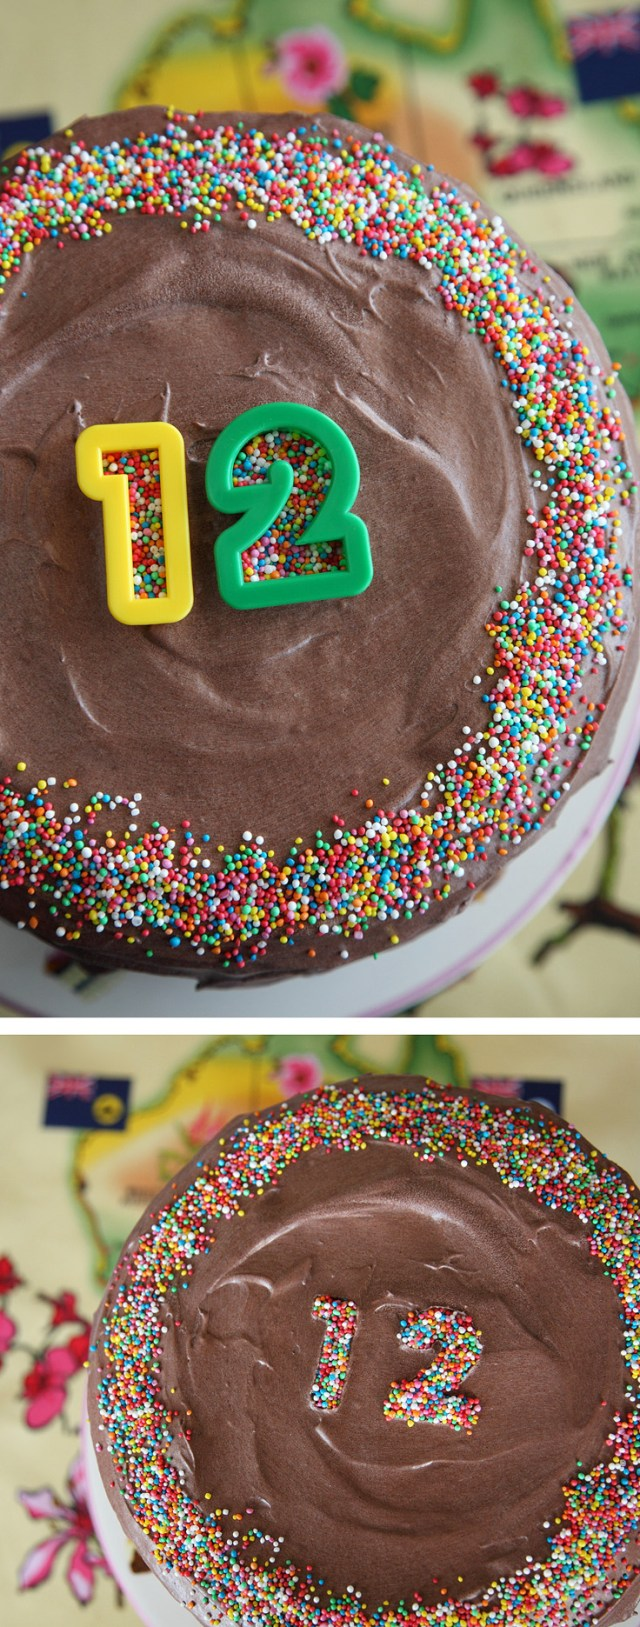 Clever - Use cookie cutters with sprinkles to create a message or write a number on your cake!